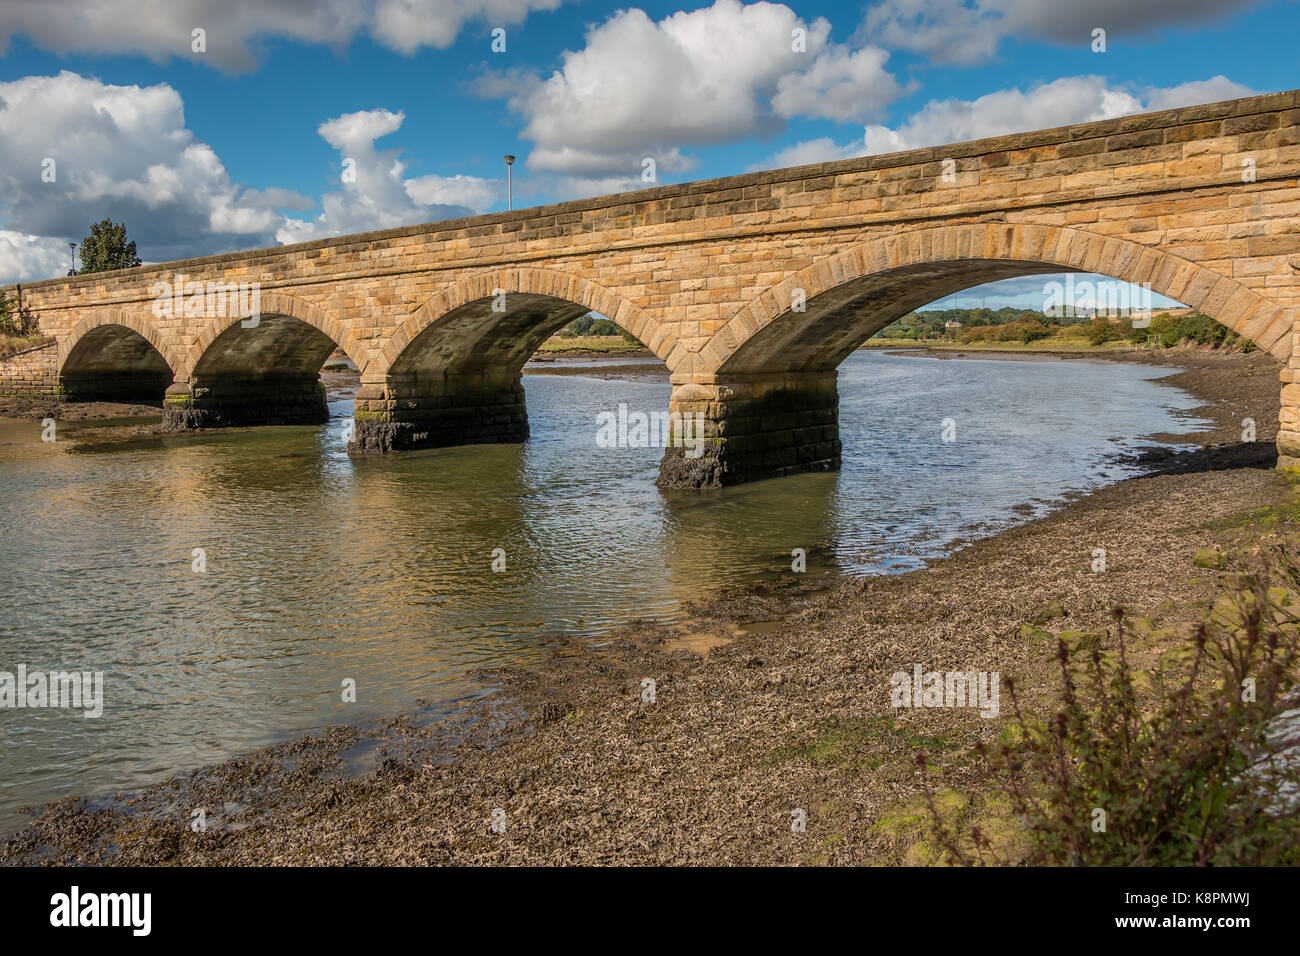 Northumberland coast, the Duchess Bridge over the river Aln, Alnmouth, UK September 2017 - Stock Image